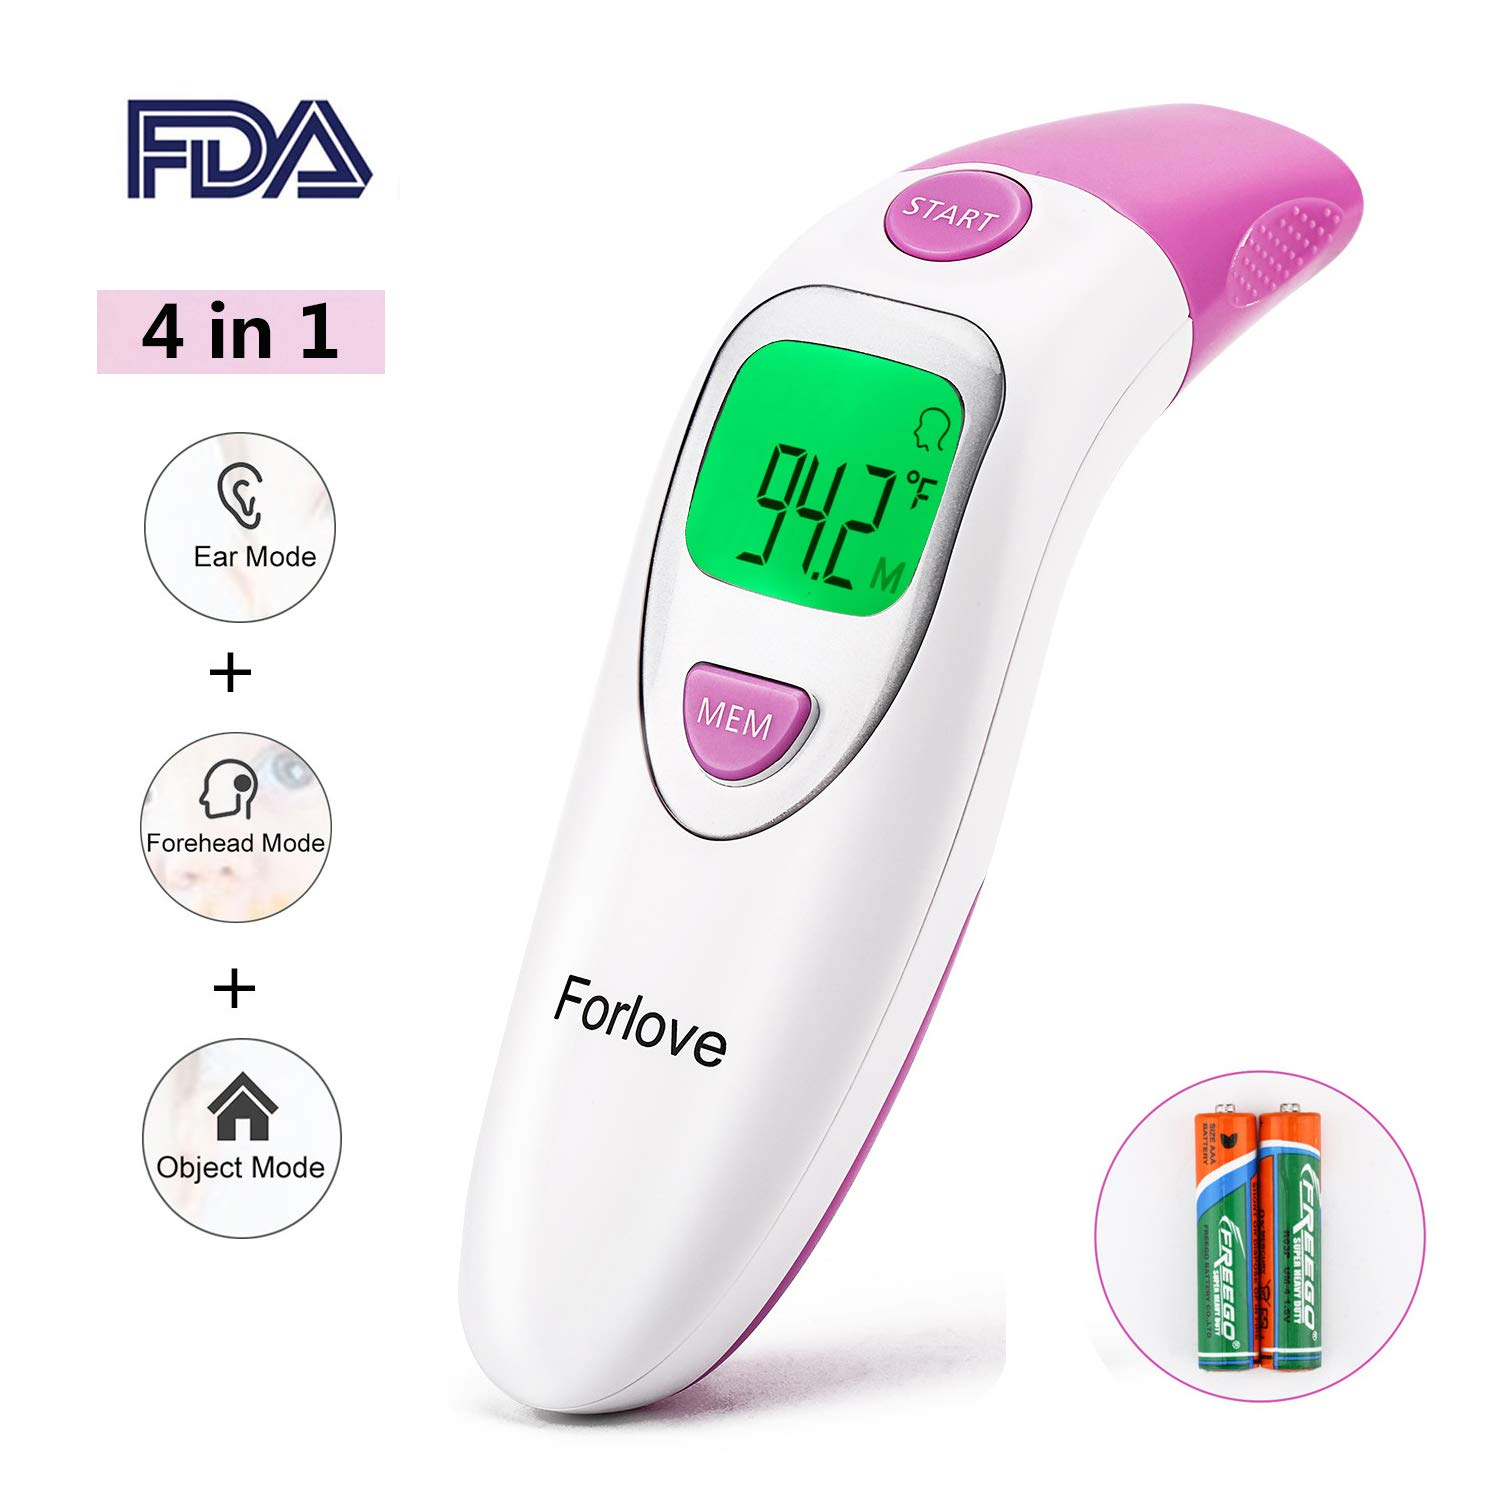 Infrared Thermometer, Forlove Digital Ear and Forehead Thermometer Professional 4 in 1 Suitable for Baby, Kids, Adults - FDA Approved (Pink)